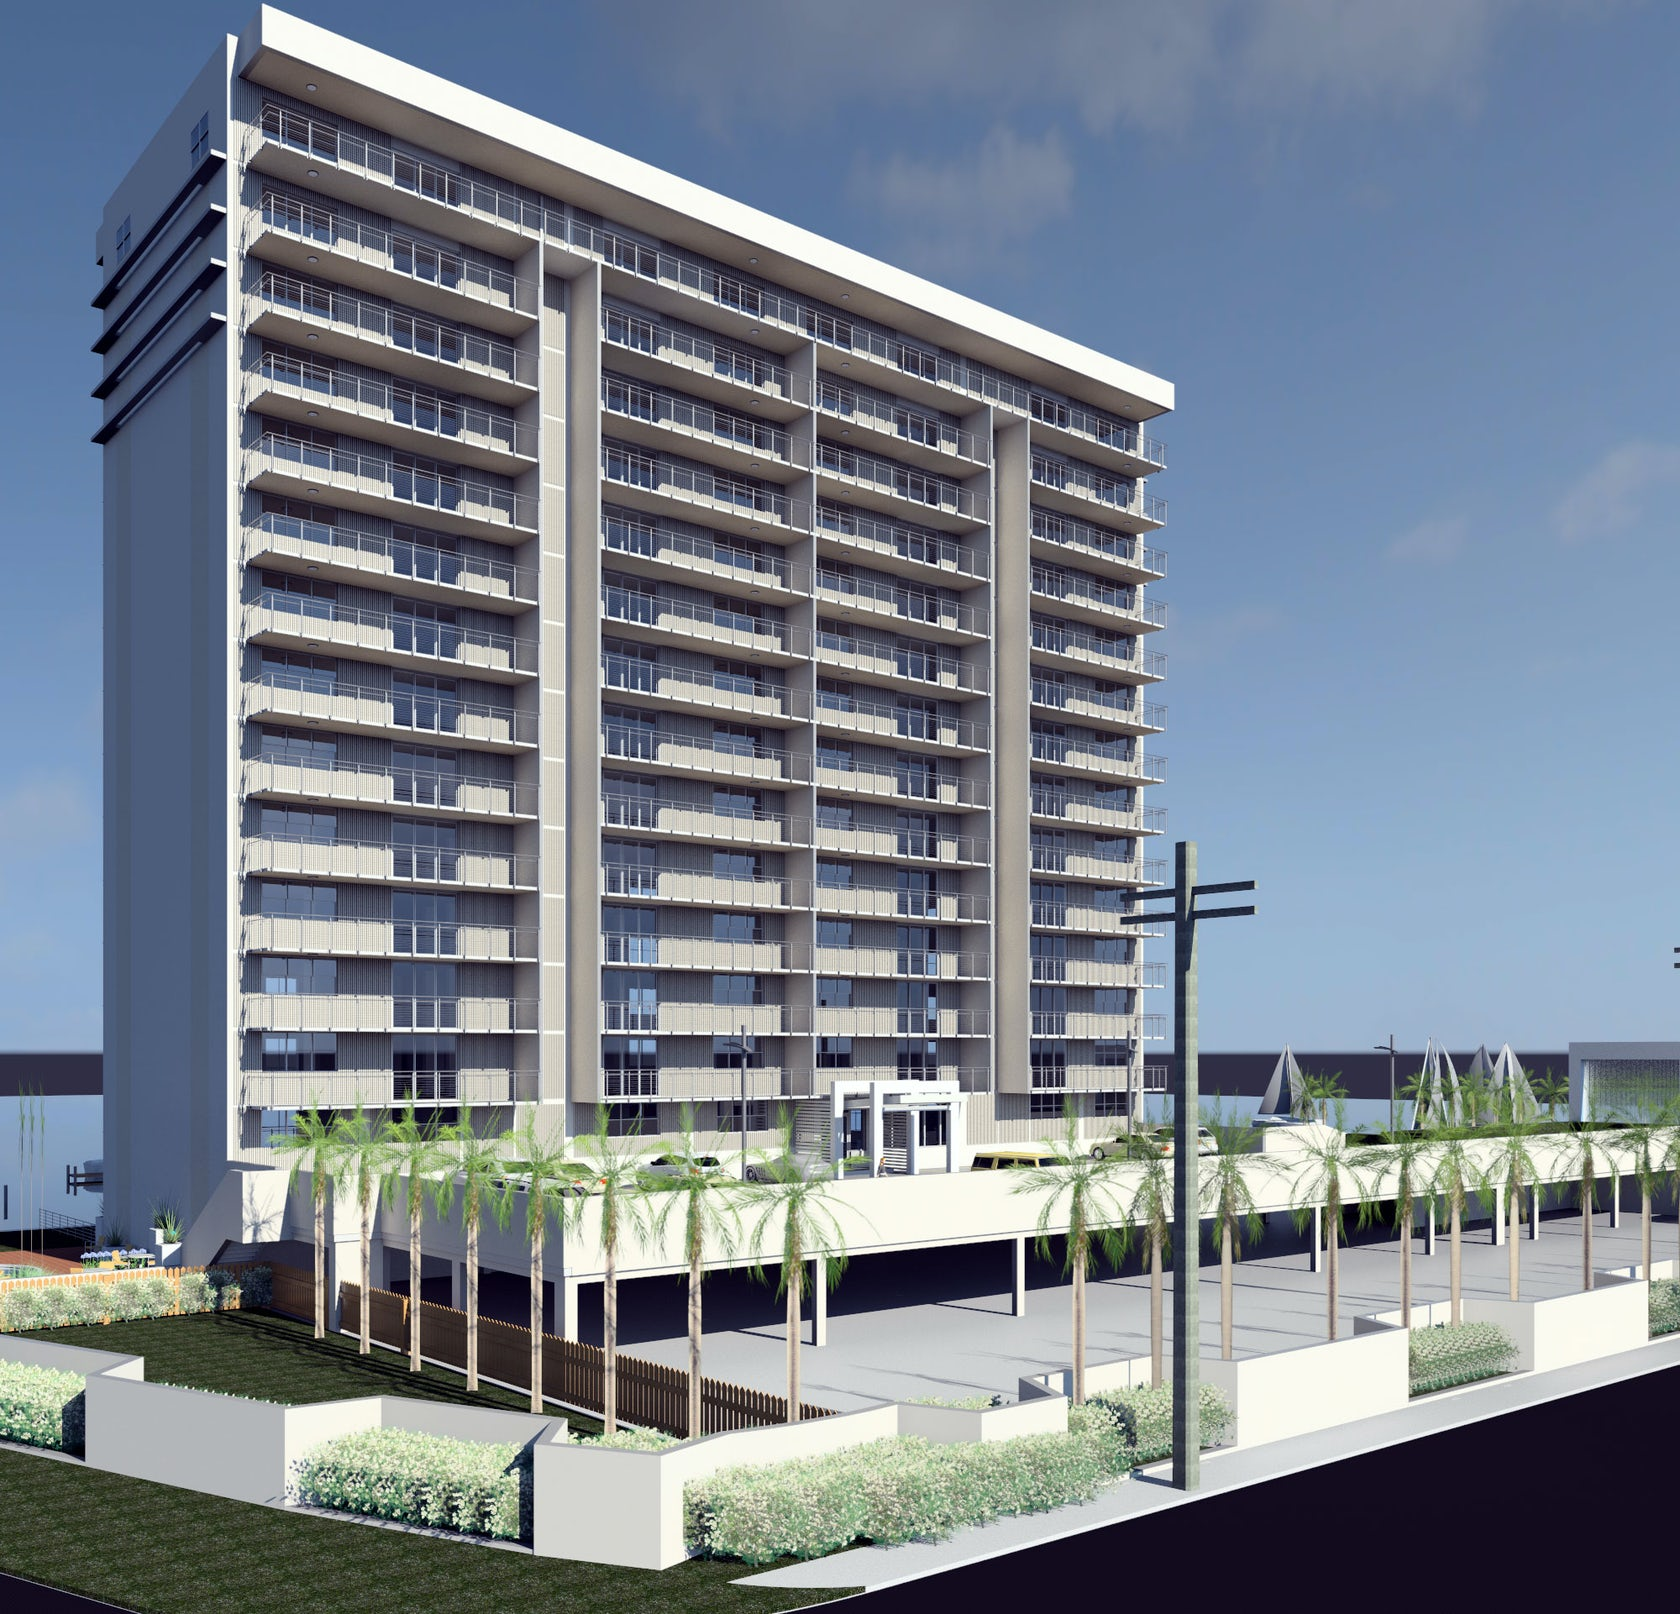 The portofino fort lauderdale architizer for Architecture firms fort lauderdale